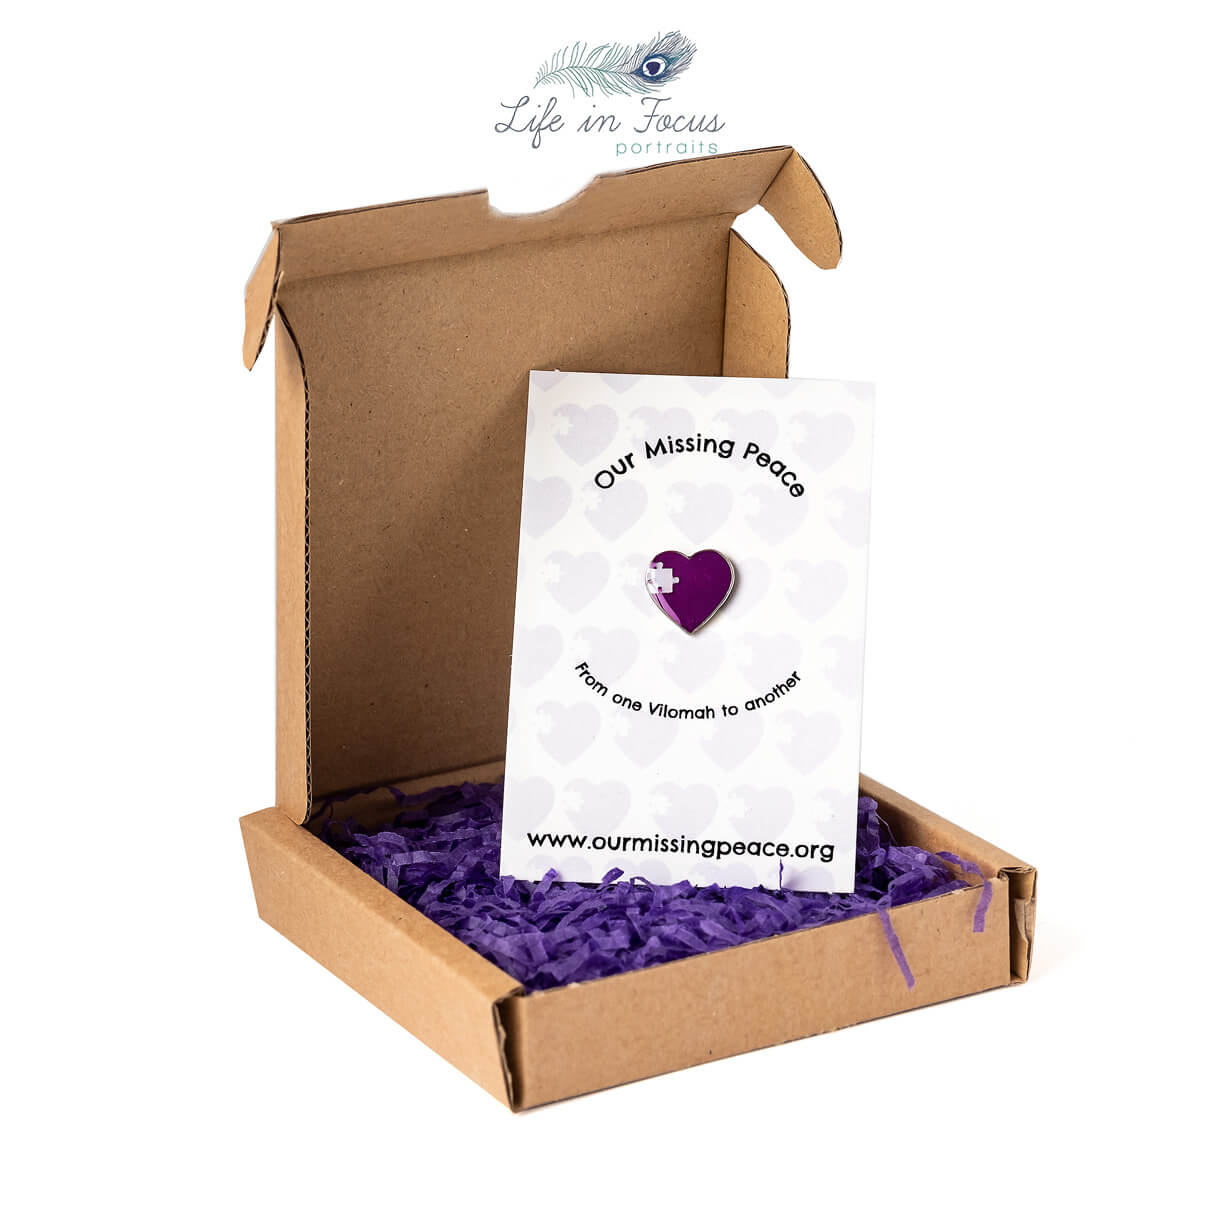 product photography charity pin in box on white background Life in Focus Portraits photography studio Rhu Helensburgh